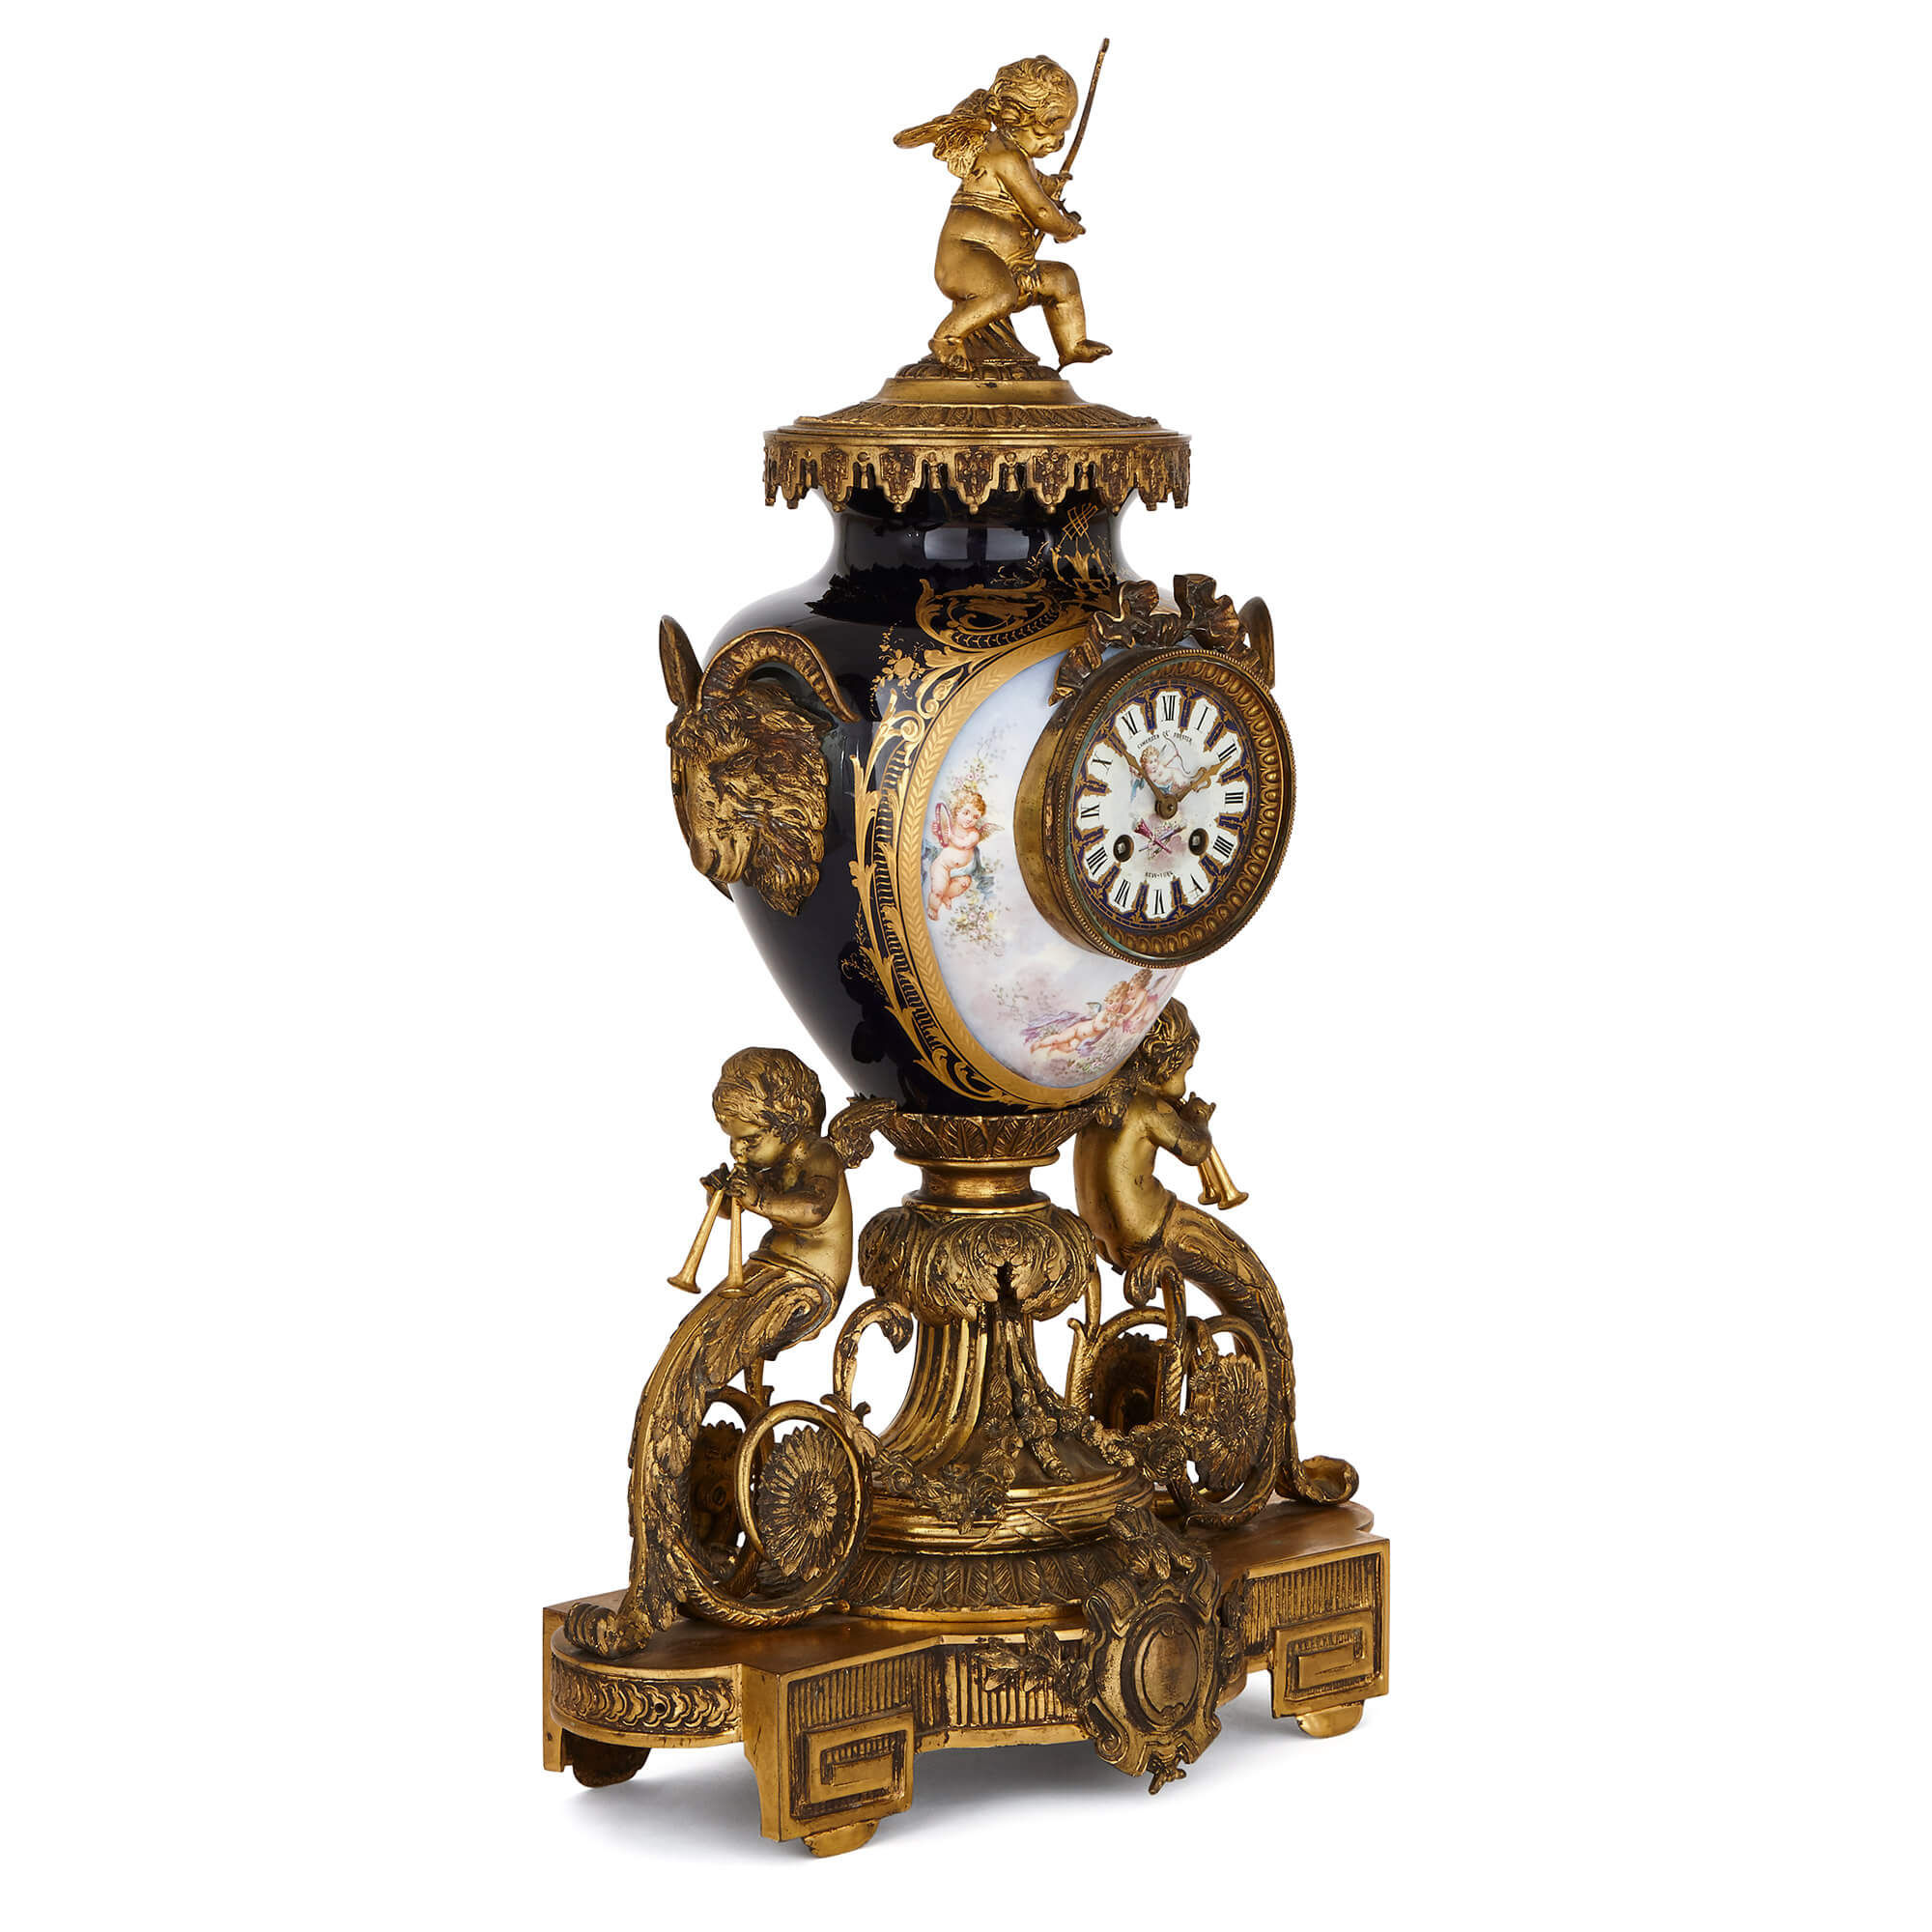 2000x2000 rococo style gilt bronze and sevres style porcelain clock